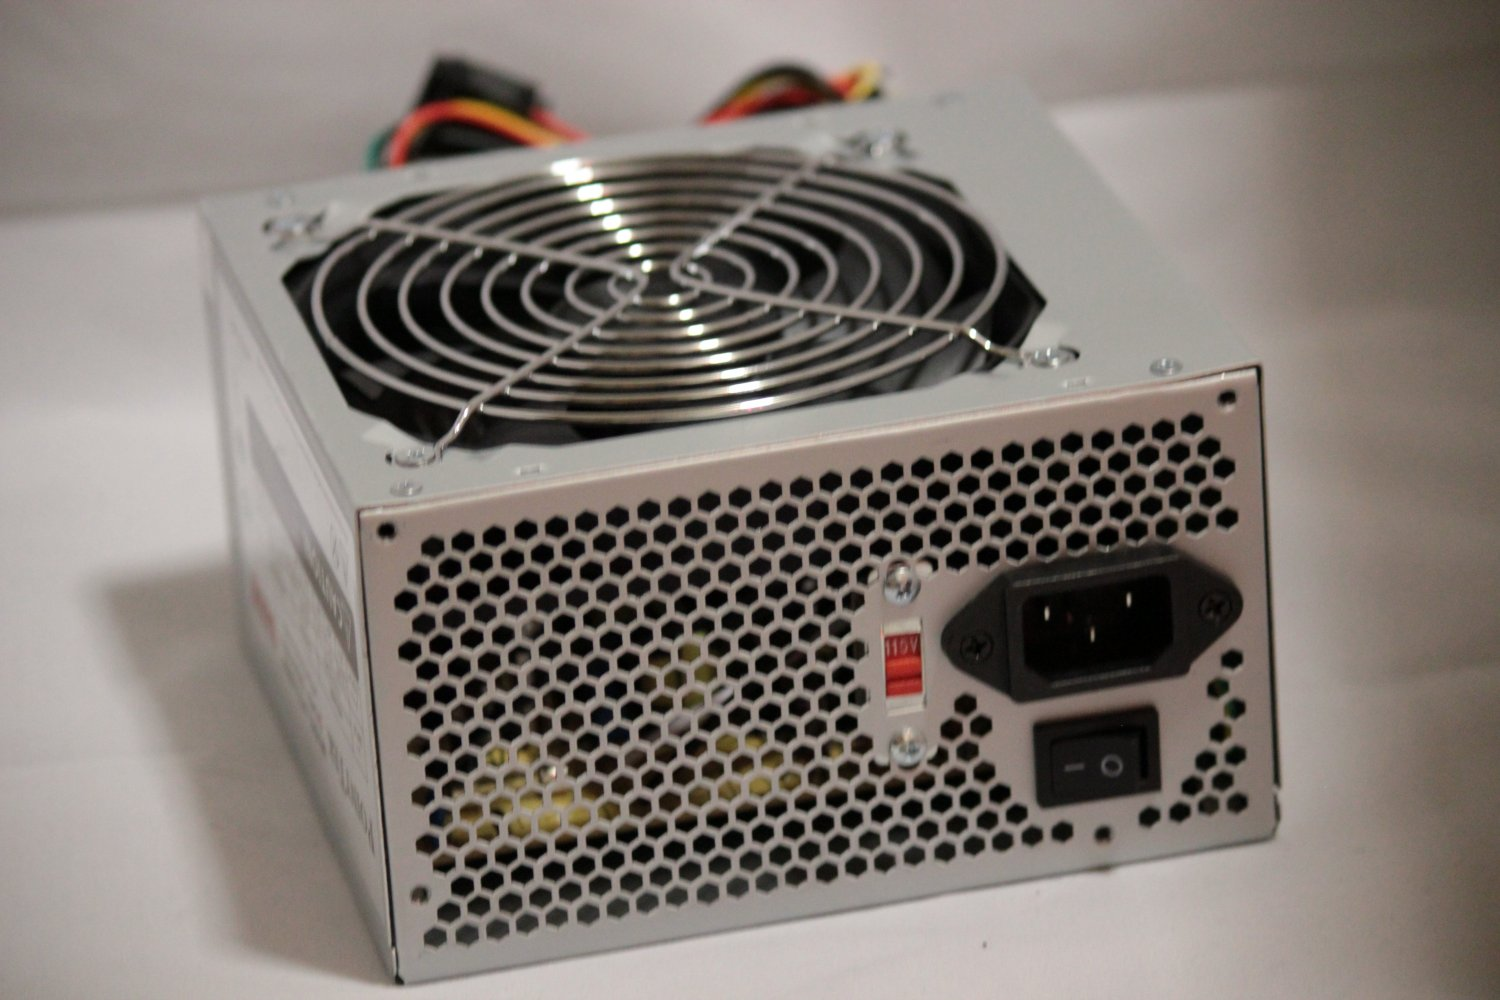 New PC Power Supply Upgrade for HP Pavilion a500y CTO Desktop Computer